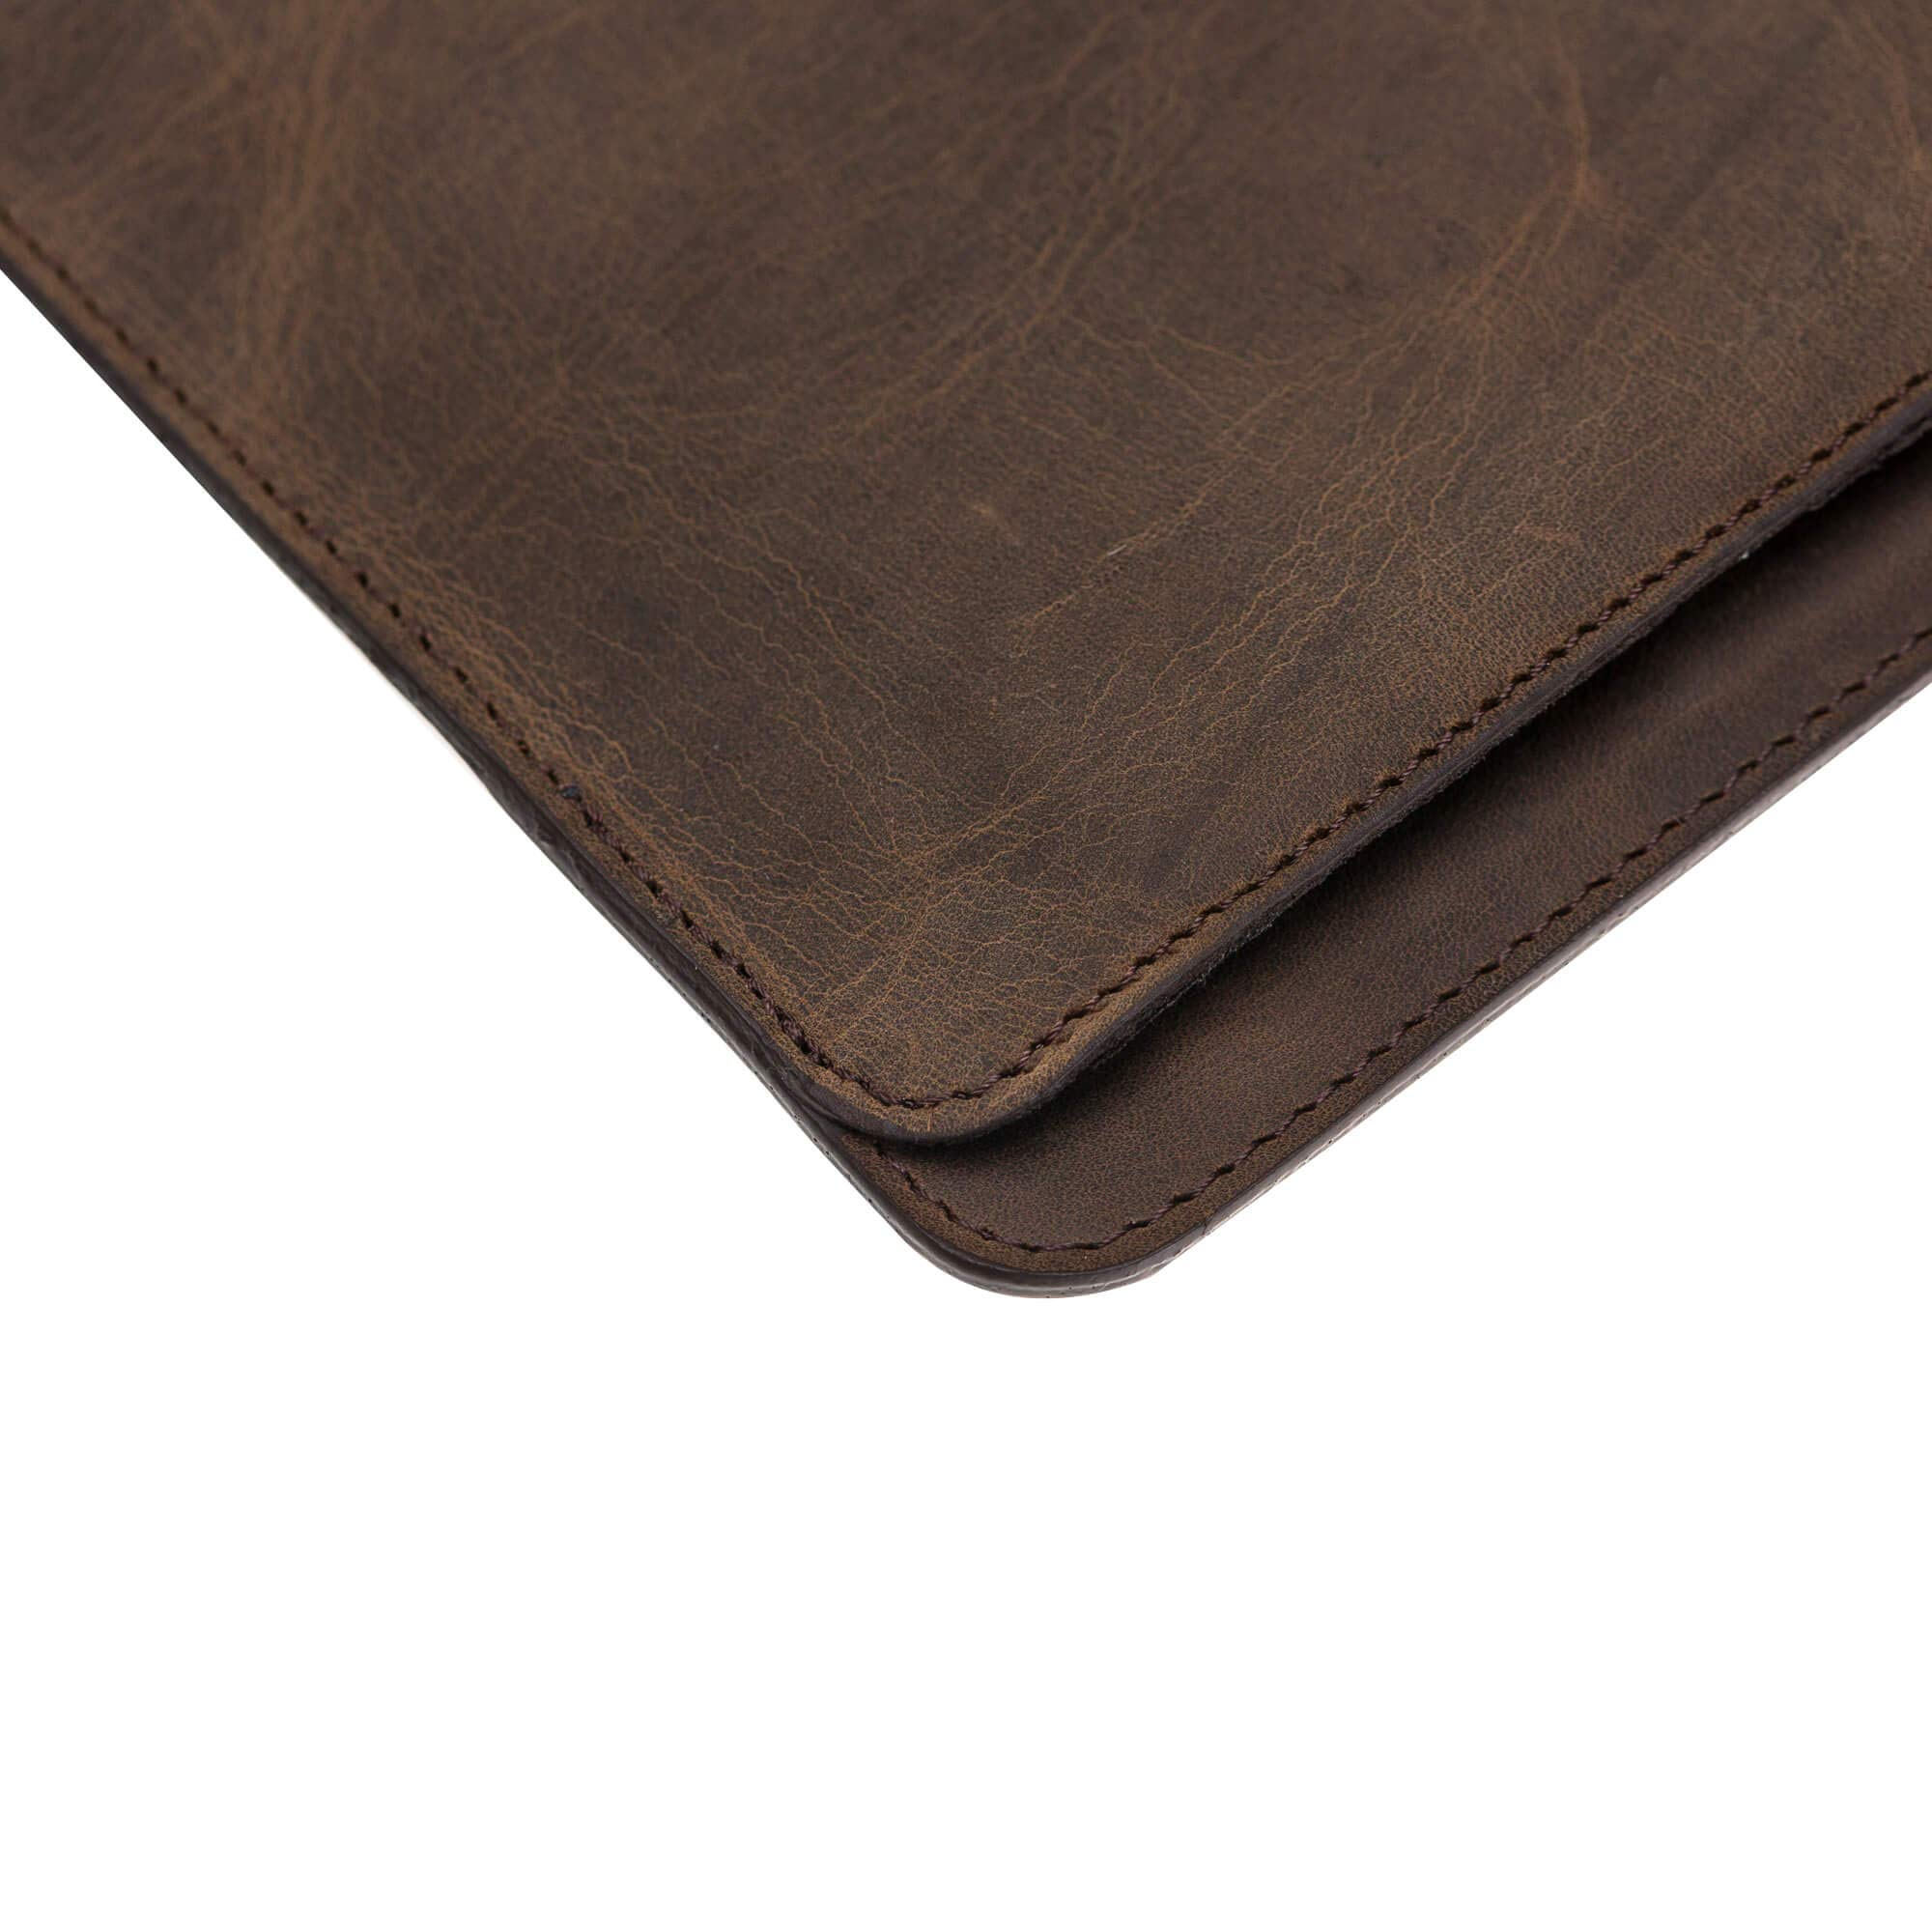 Burkley Case Compatible with MacBook Pro 15'' Burkley Leather Sleeve, Handcrafted and Full Grain Leather for MacBook Pro 15'' (Distressed Antique Coffee) by Burkley Case (Image #5)